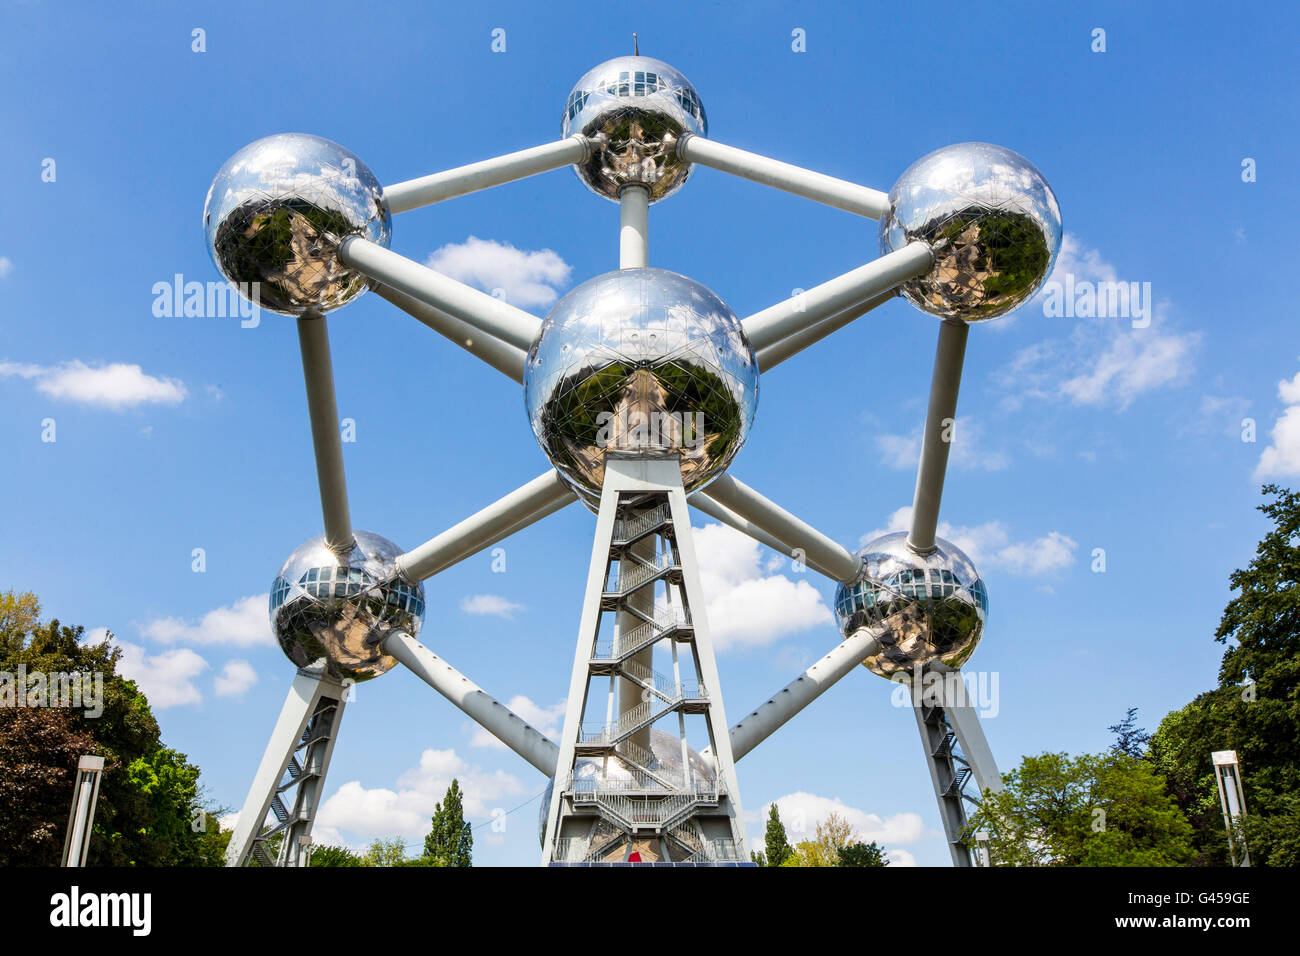 The Atomium in Brussels, Belgium, at the exhibition grounds, - Stock Image